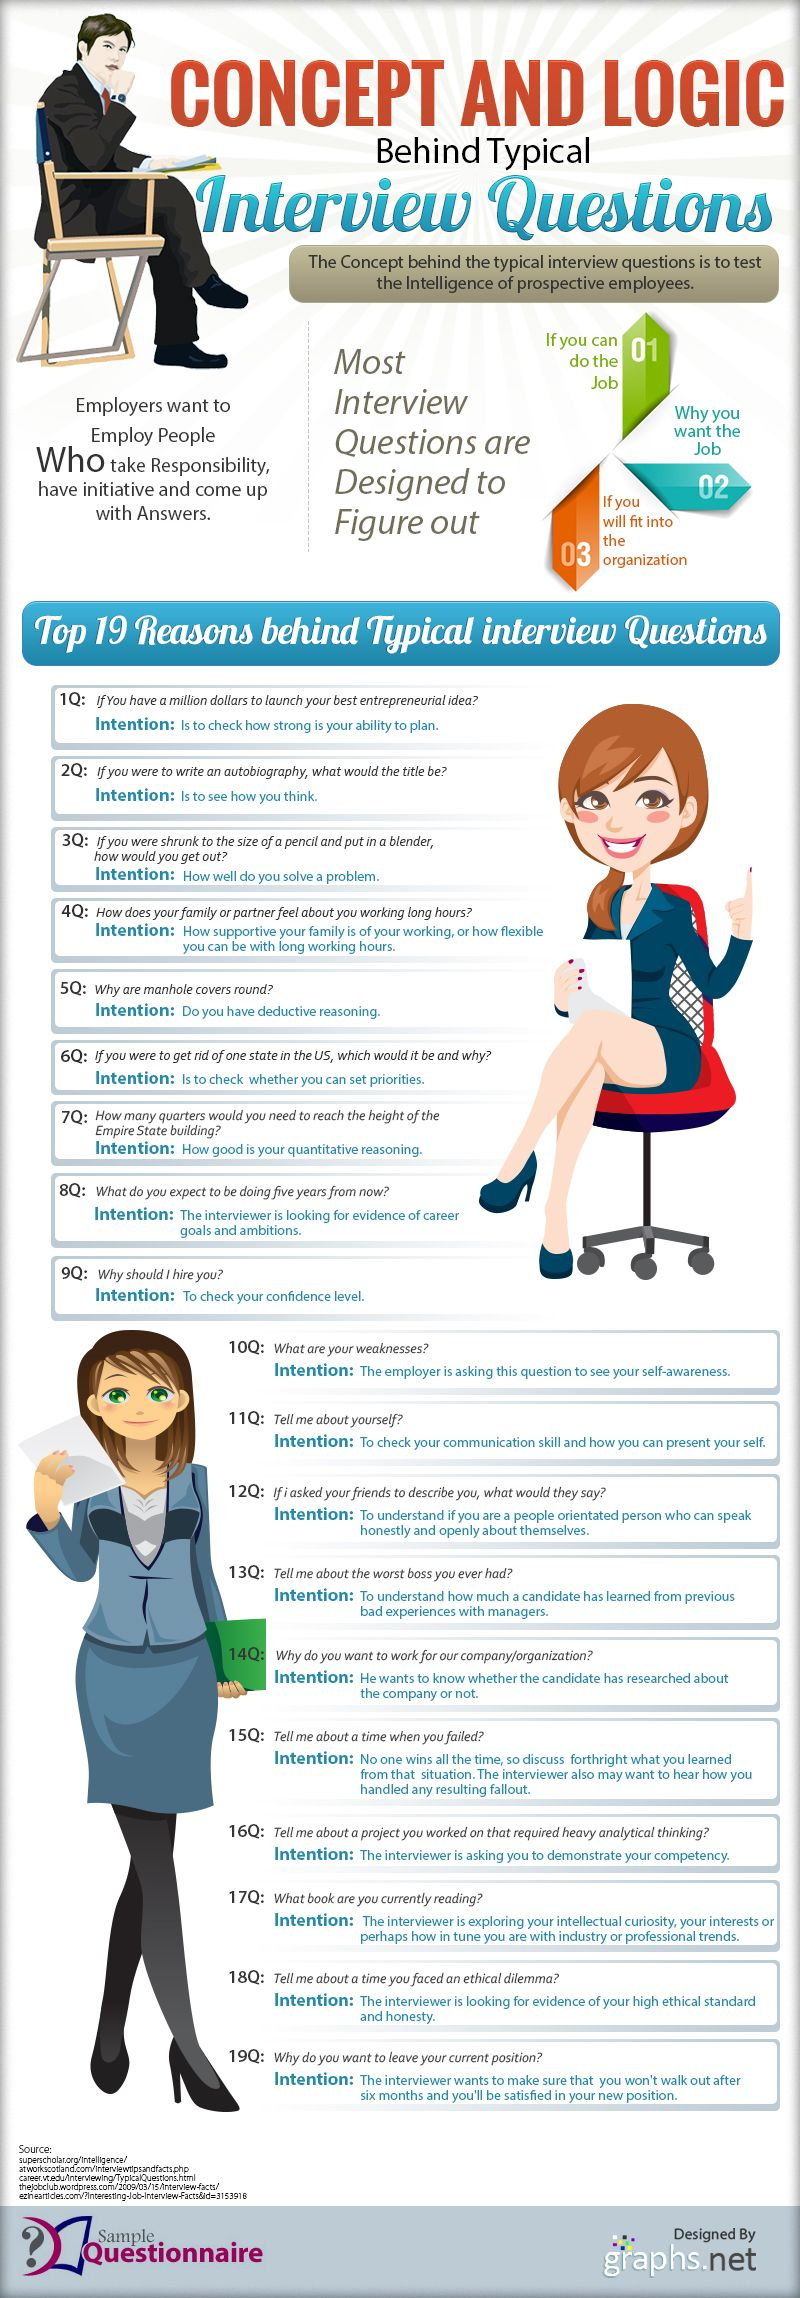 job interview questions and answers infographics mania what is the logic behind the most popular interview questions infographic careeradvisordaily dug this up and thought it might be good to pin it